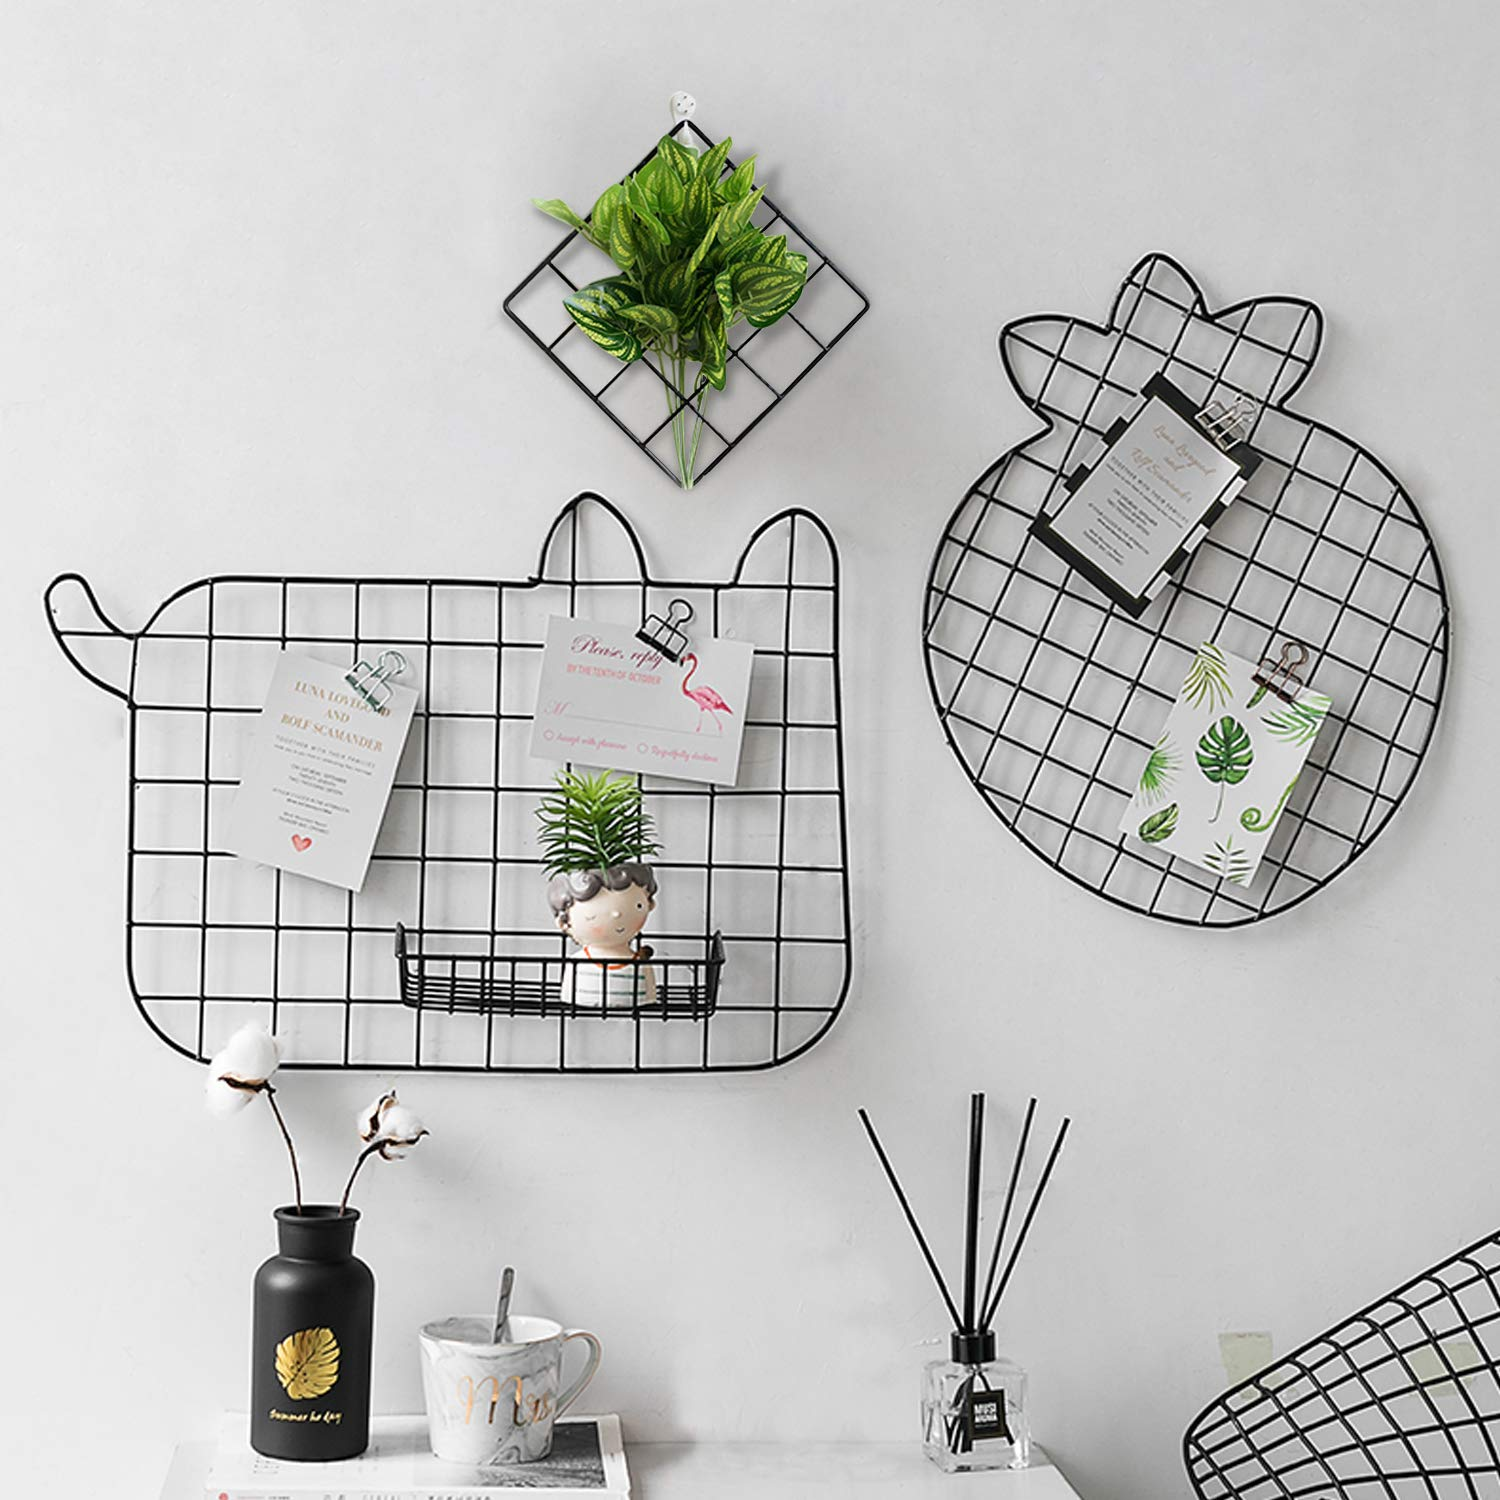 GBYAN Cat Grid Wall Panel, Decorative Iron Rack Clip, Painted Wire Photograph Grid Wall Hanging Picture Multifunctional Photo Hanging Display Storage Organizer,25.6inch x17.7inch, Black 2 Pack by GBYAN